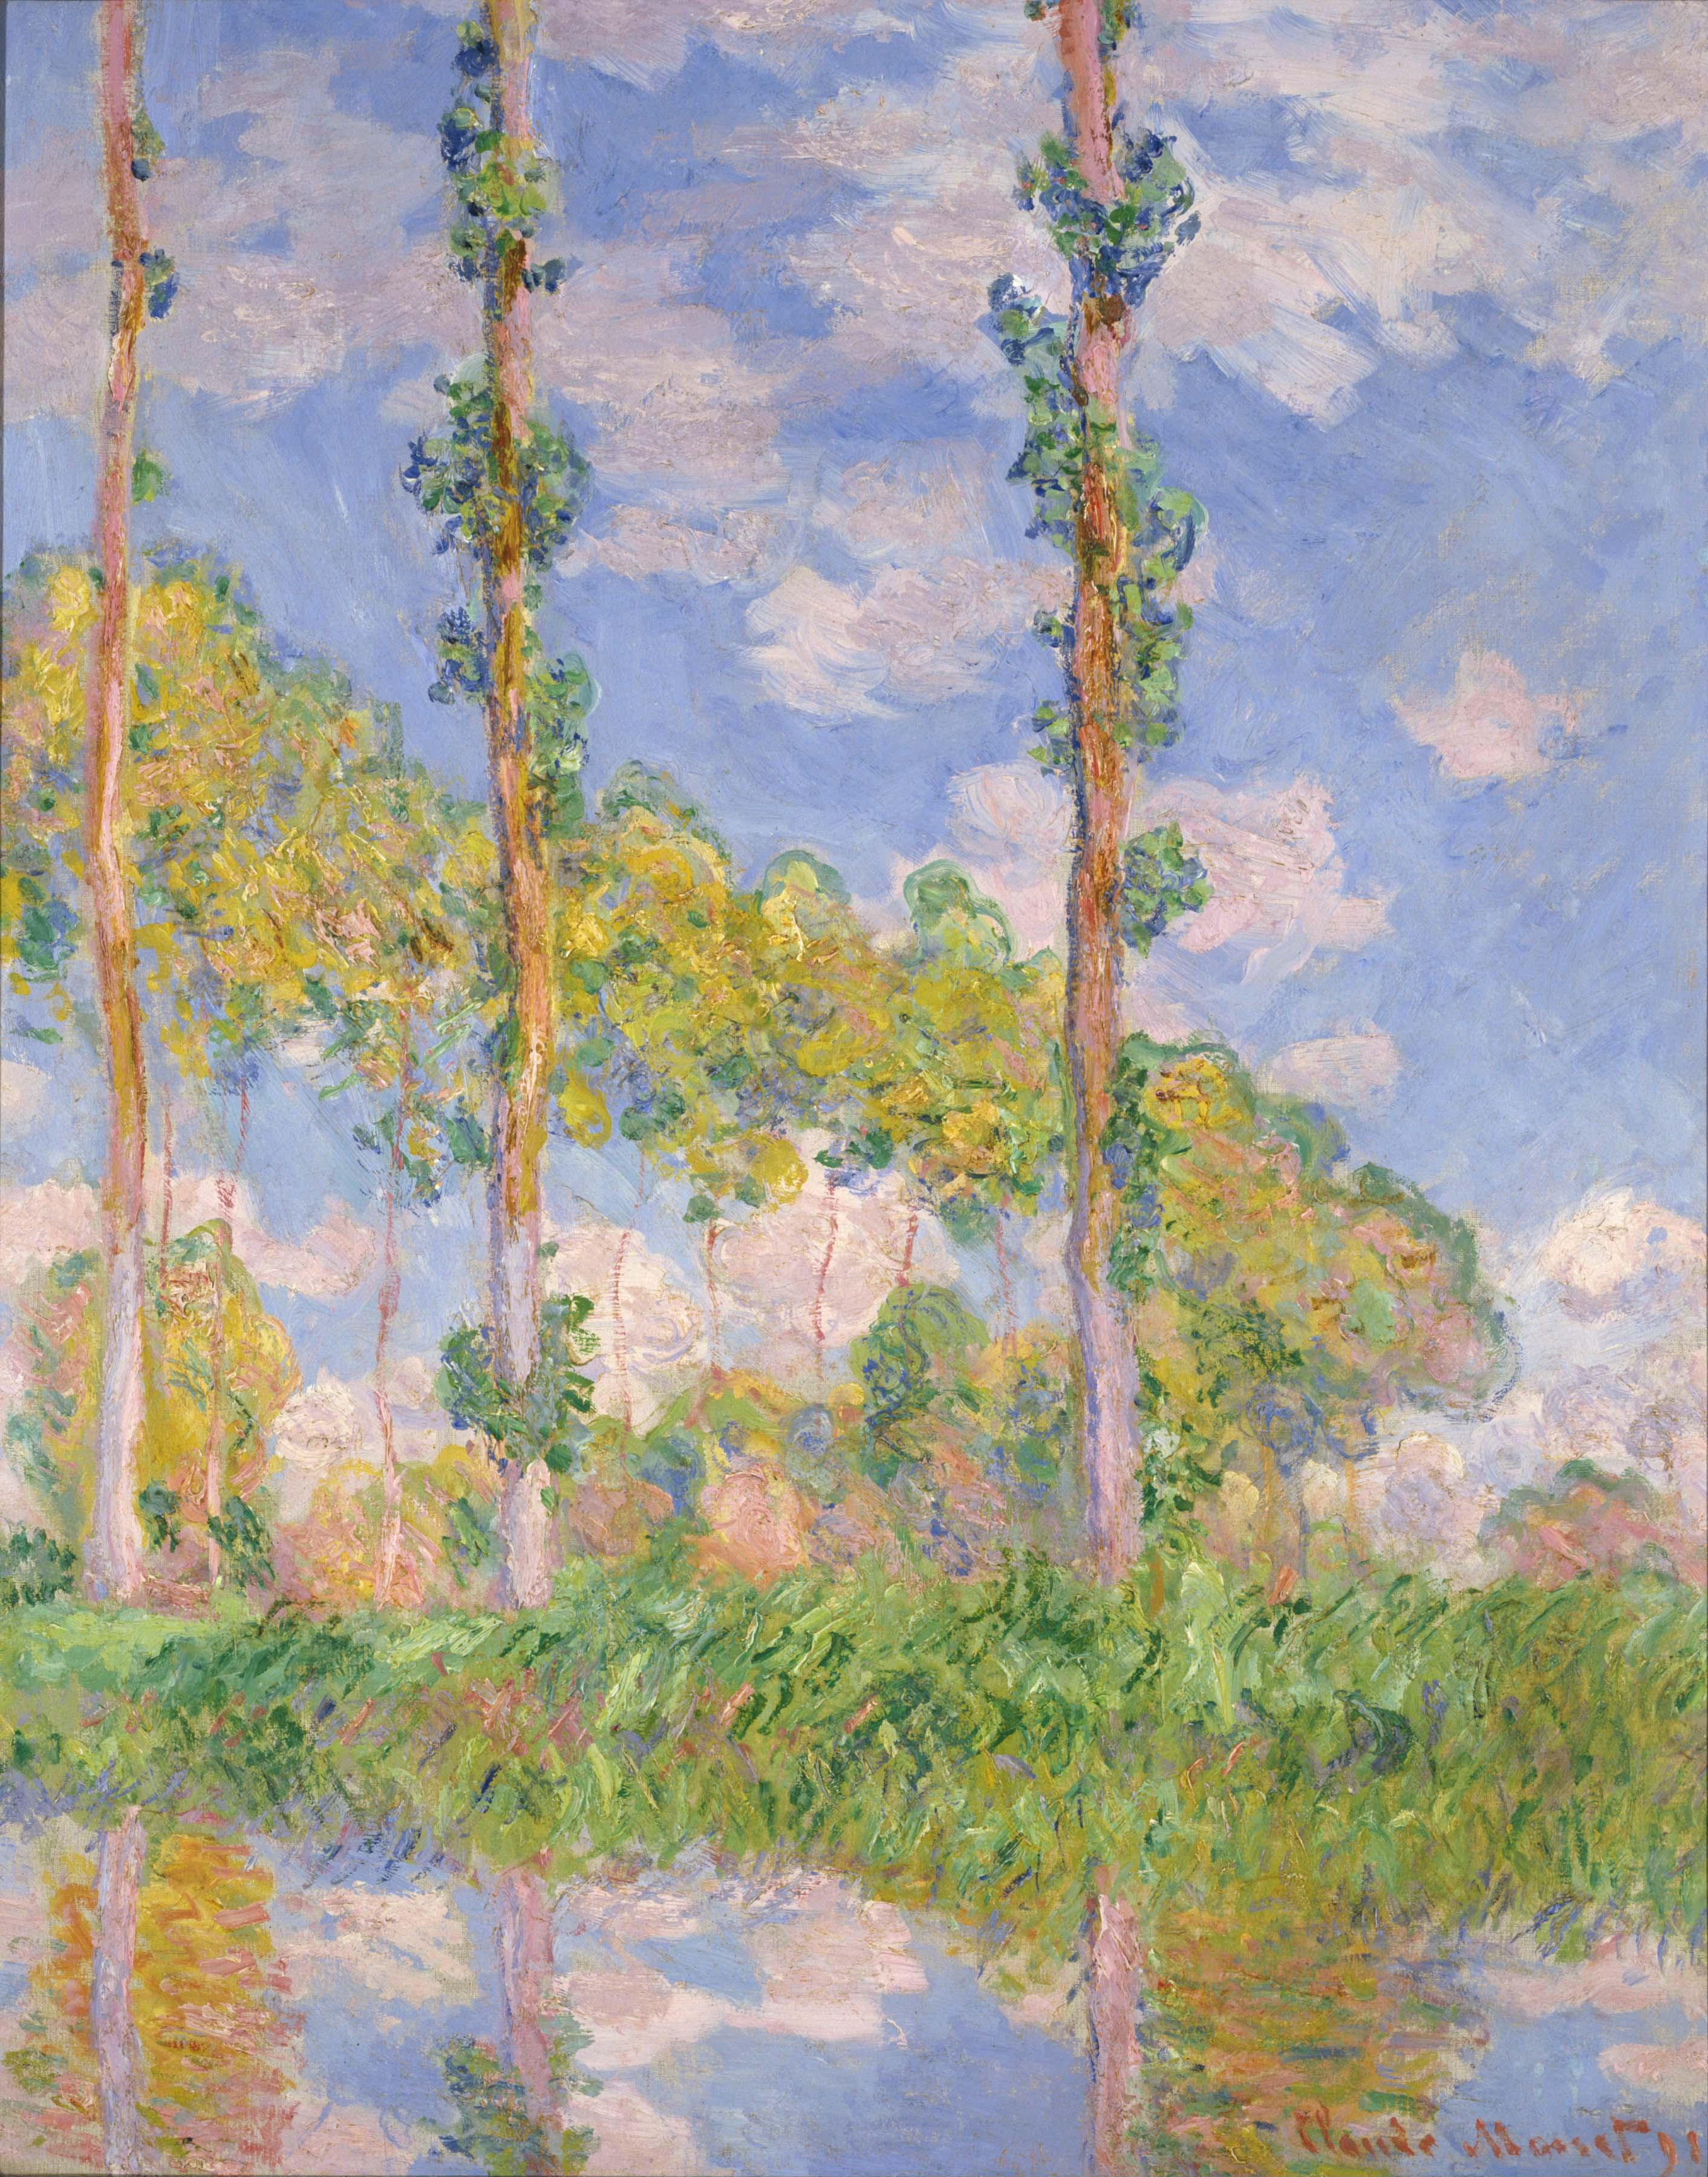 Monet: Poplars in the Sun